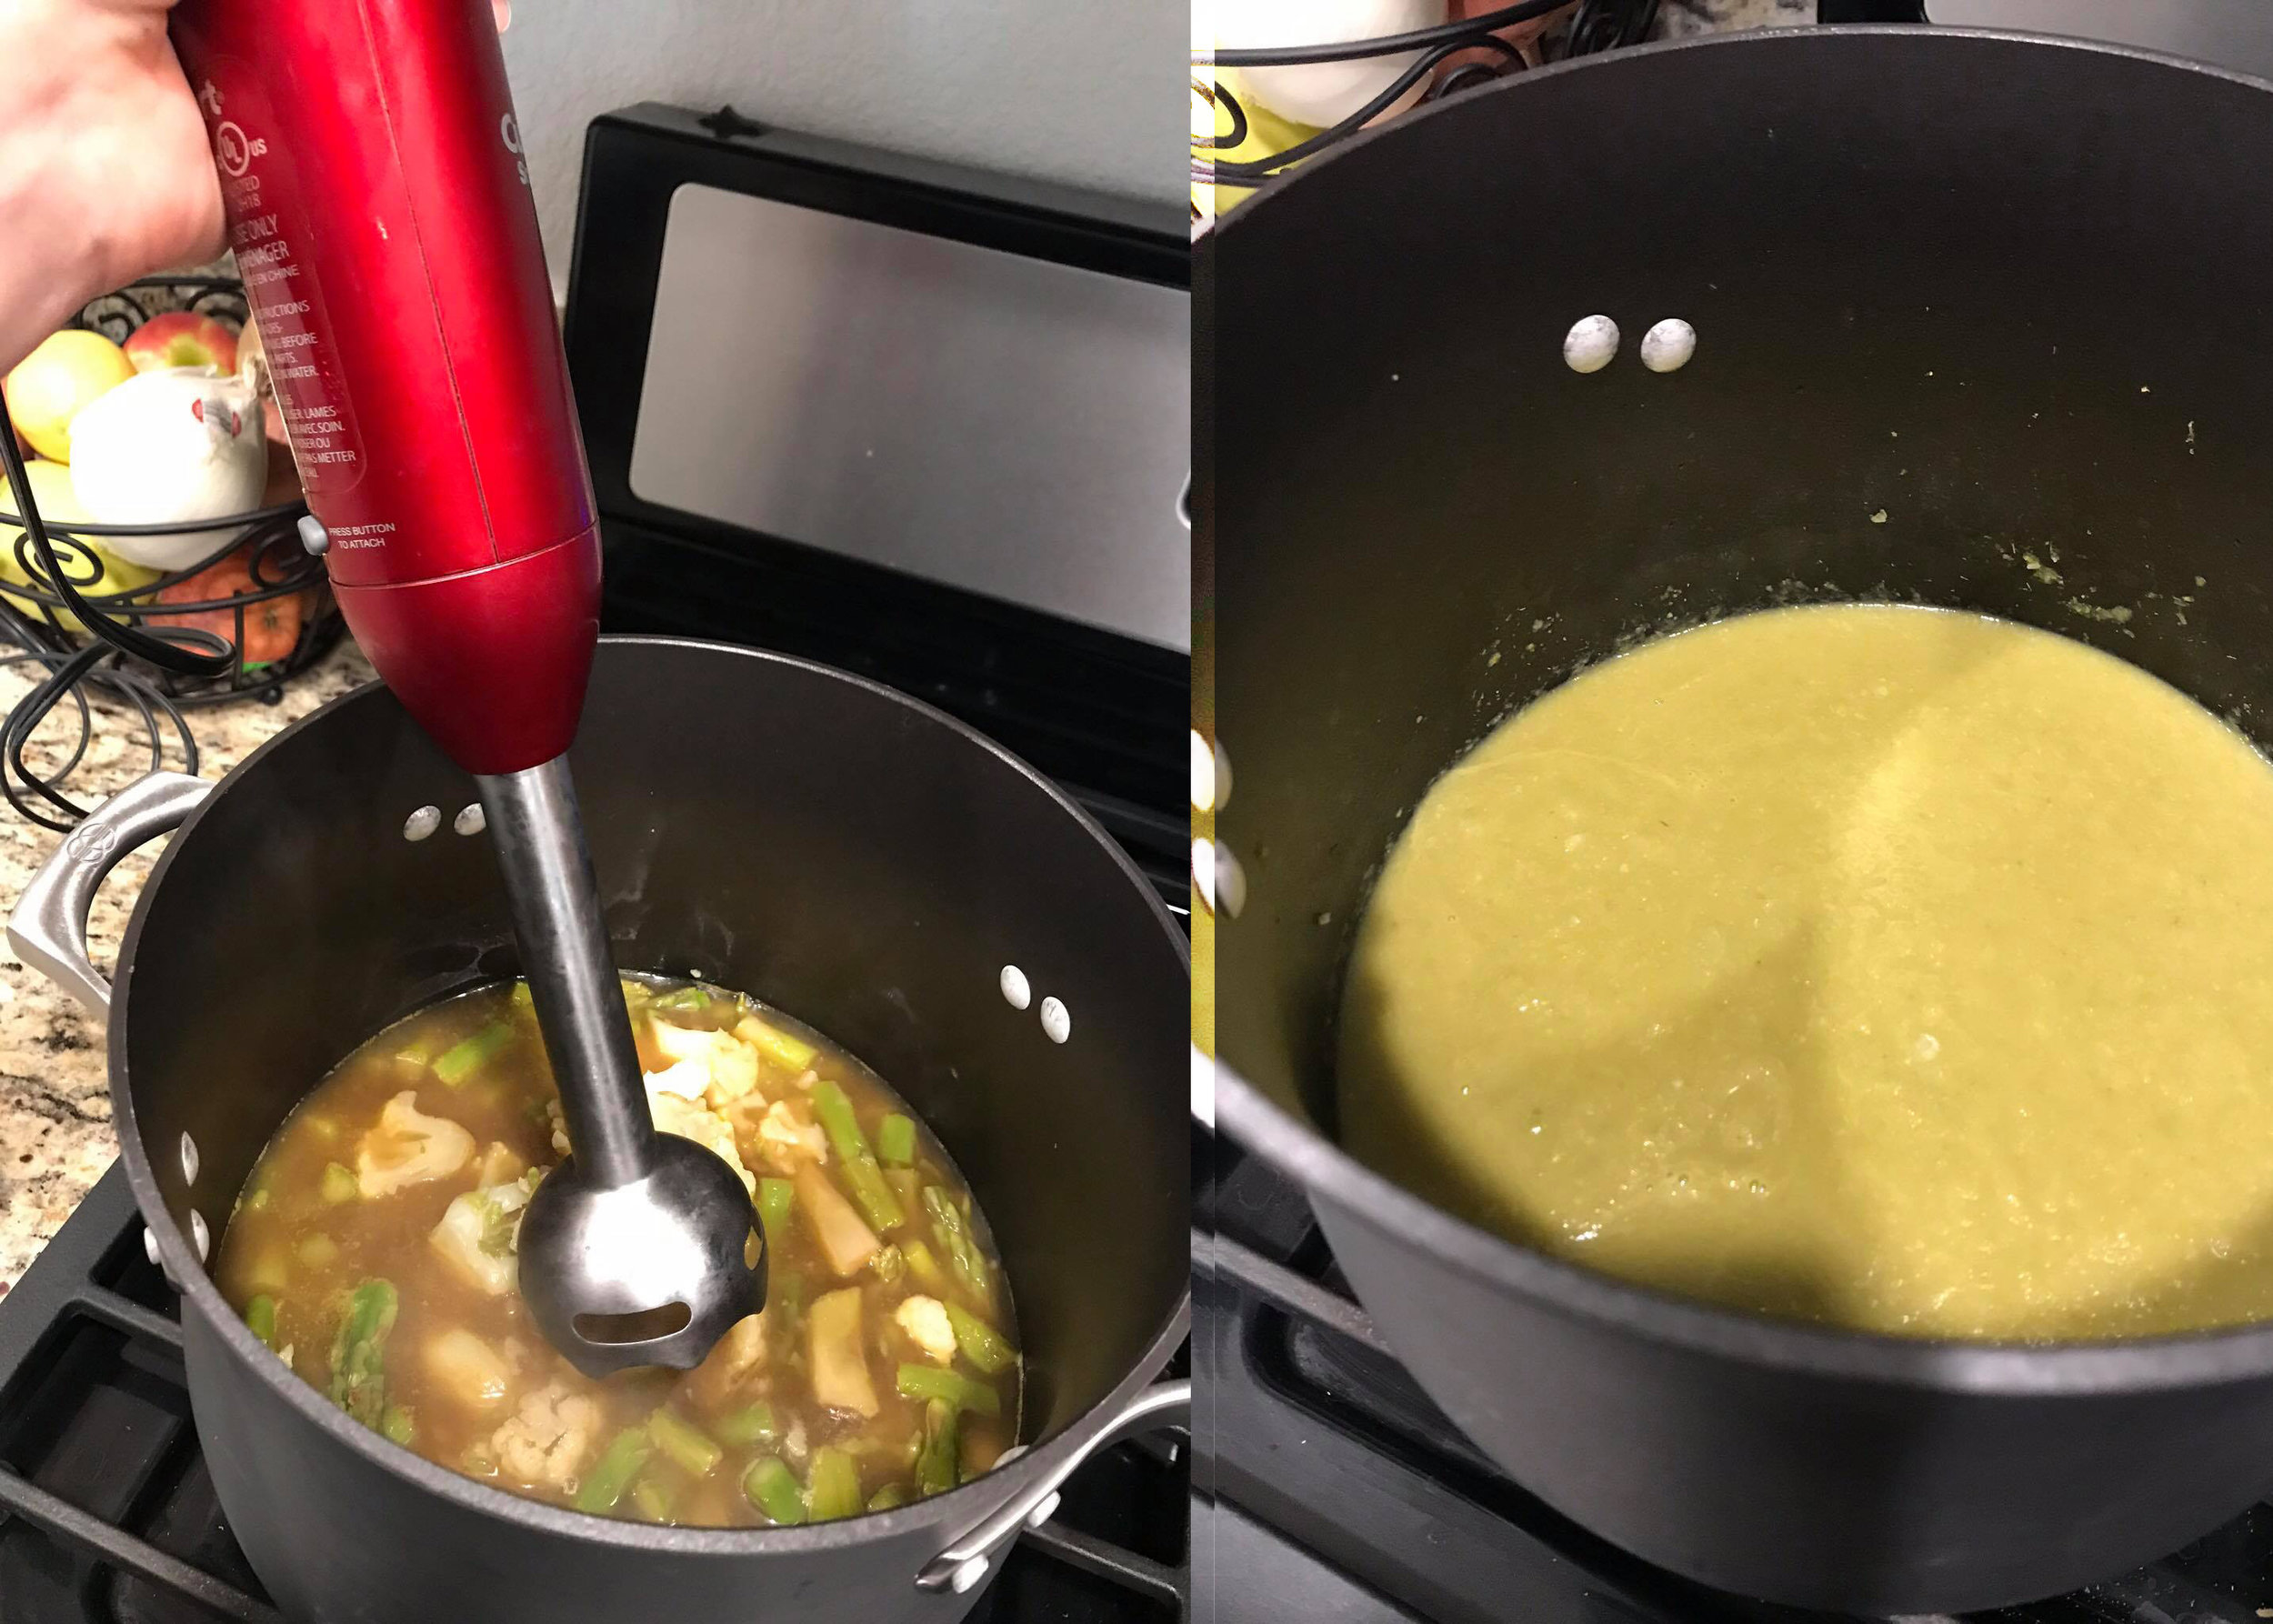 Step 3. - Carefully transfer the soup to a blender and blend on high speed until smooth, about 2 minutes. (Or use a handheld immersion blender to purée the soup directly in the pot.)